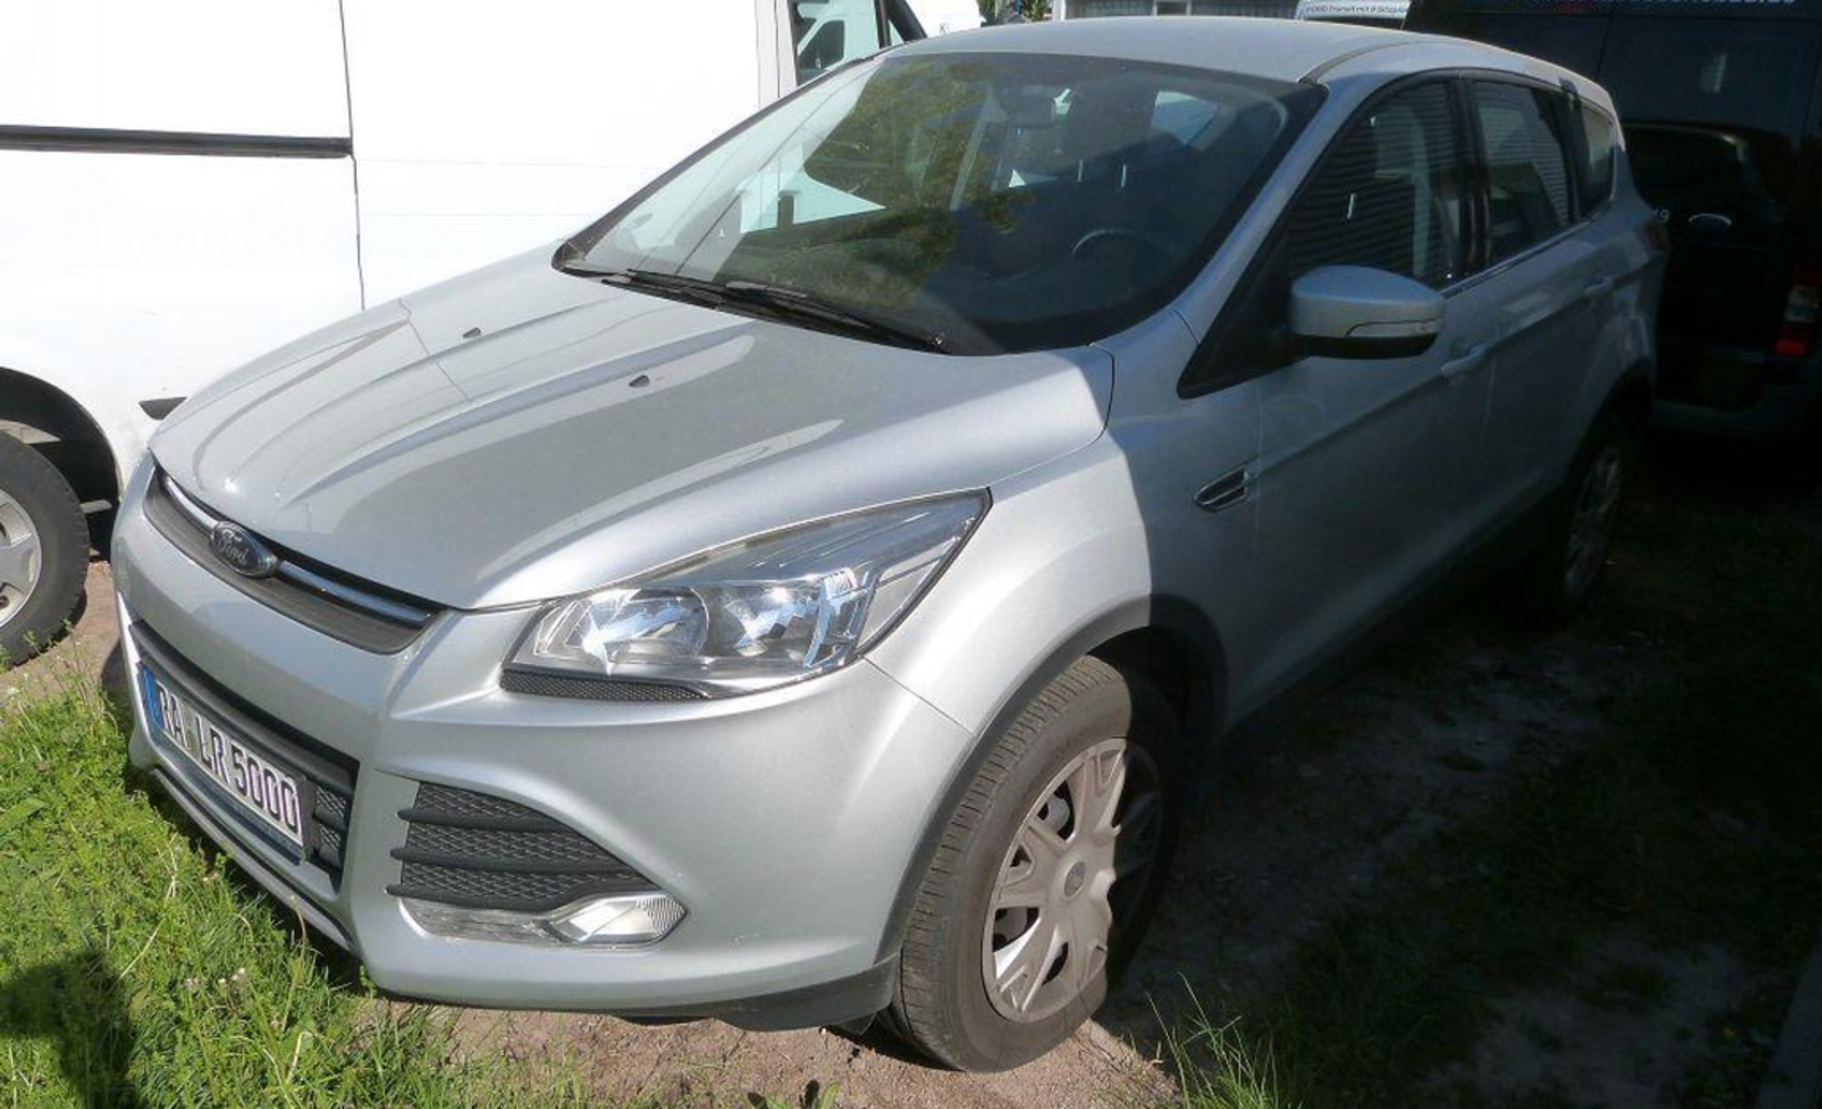 Ford Kuga 1.6 EcoBoost 2x4 Trend (538335) detail1